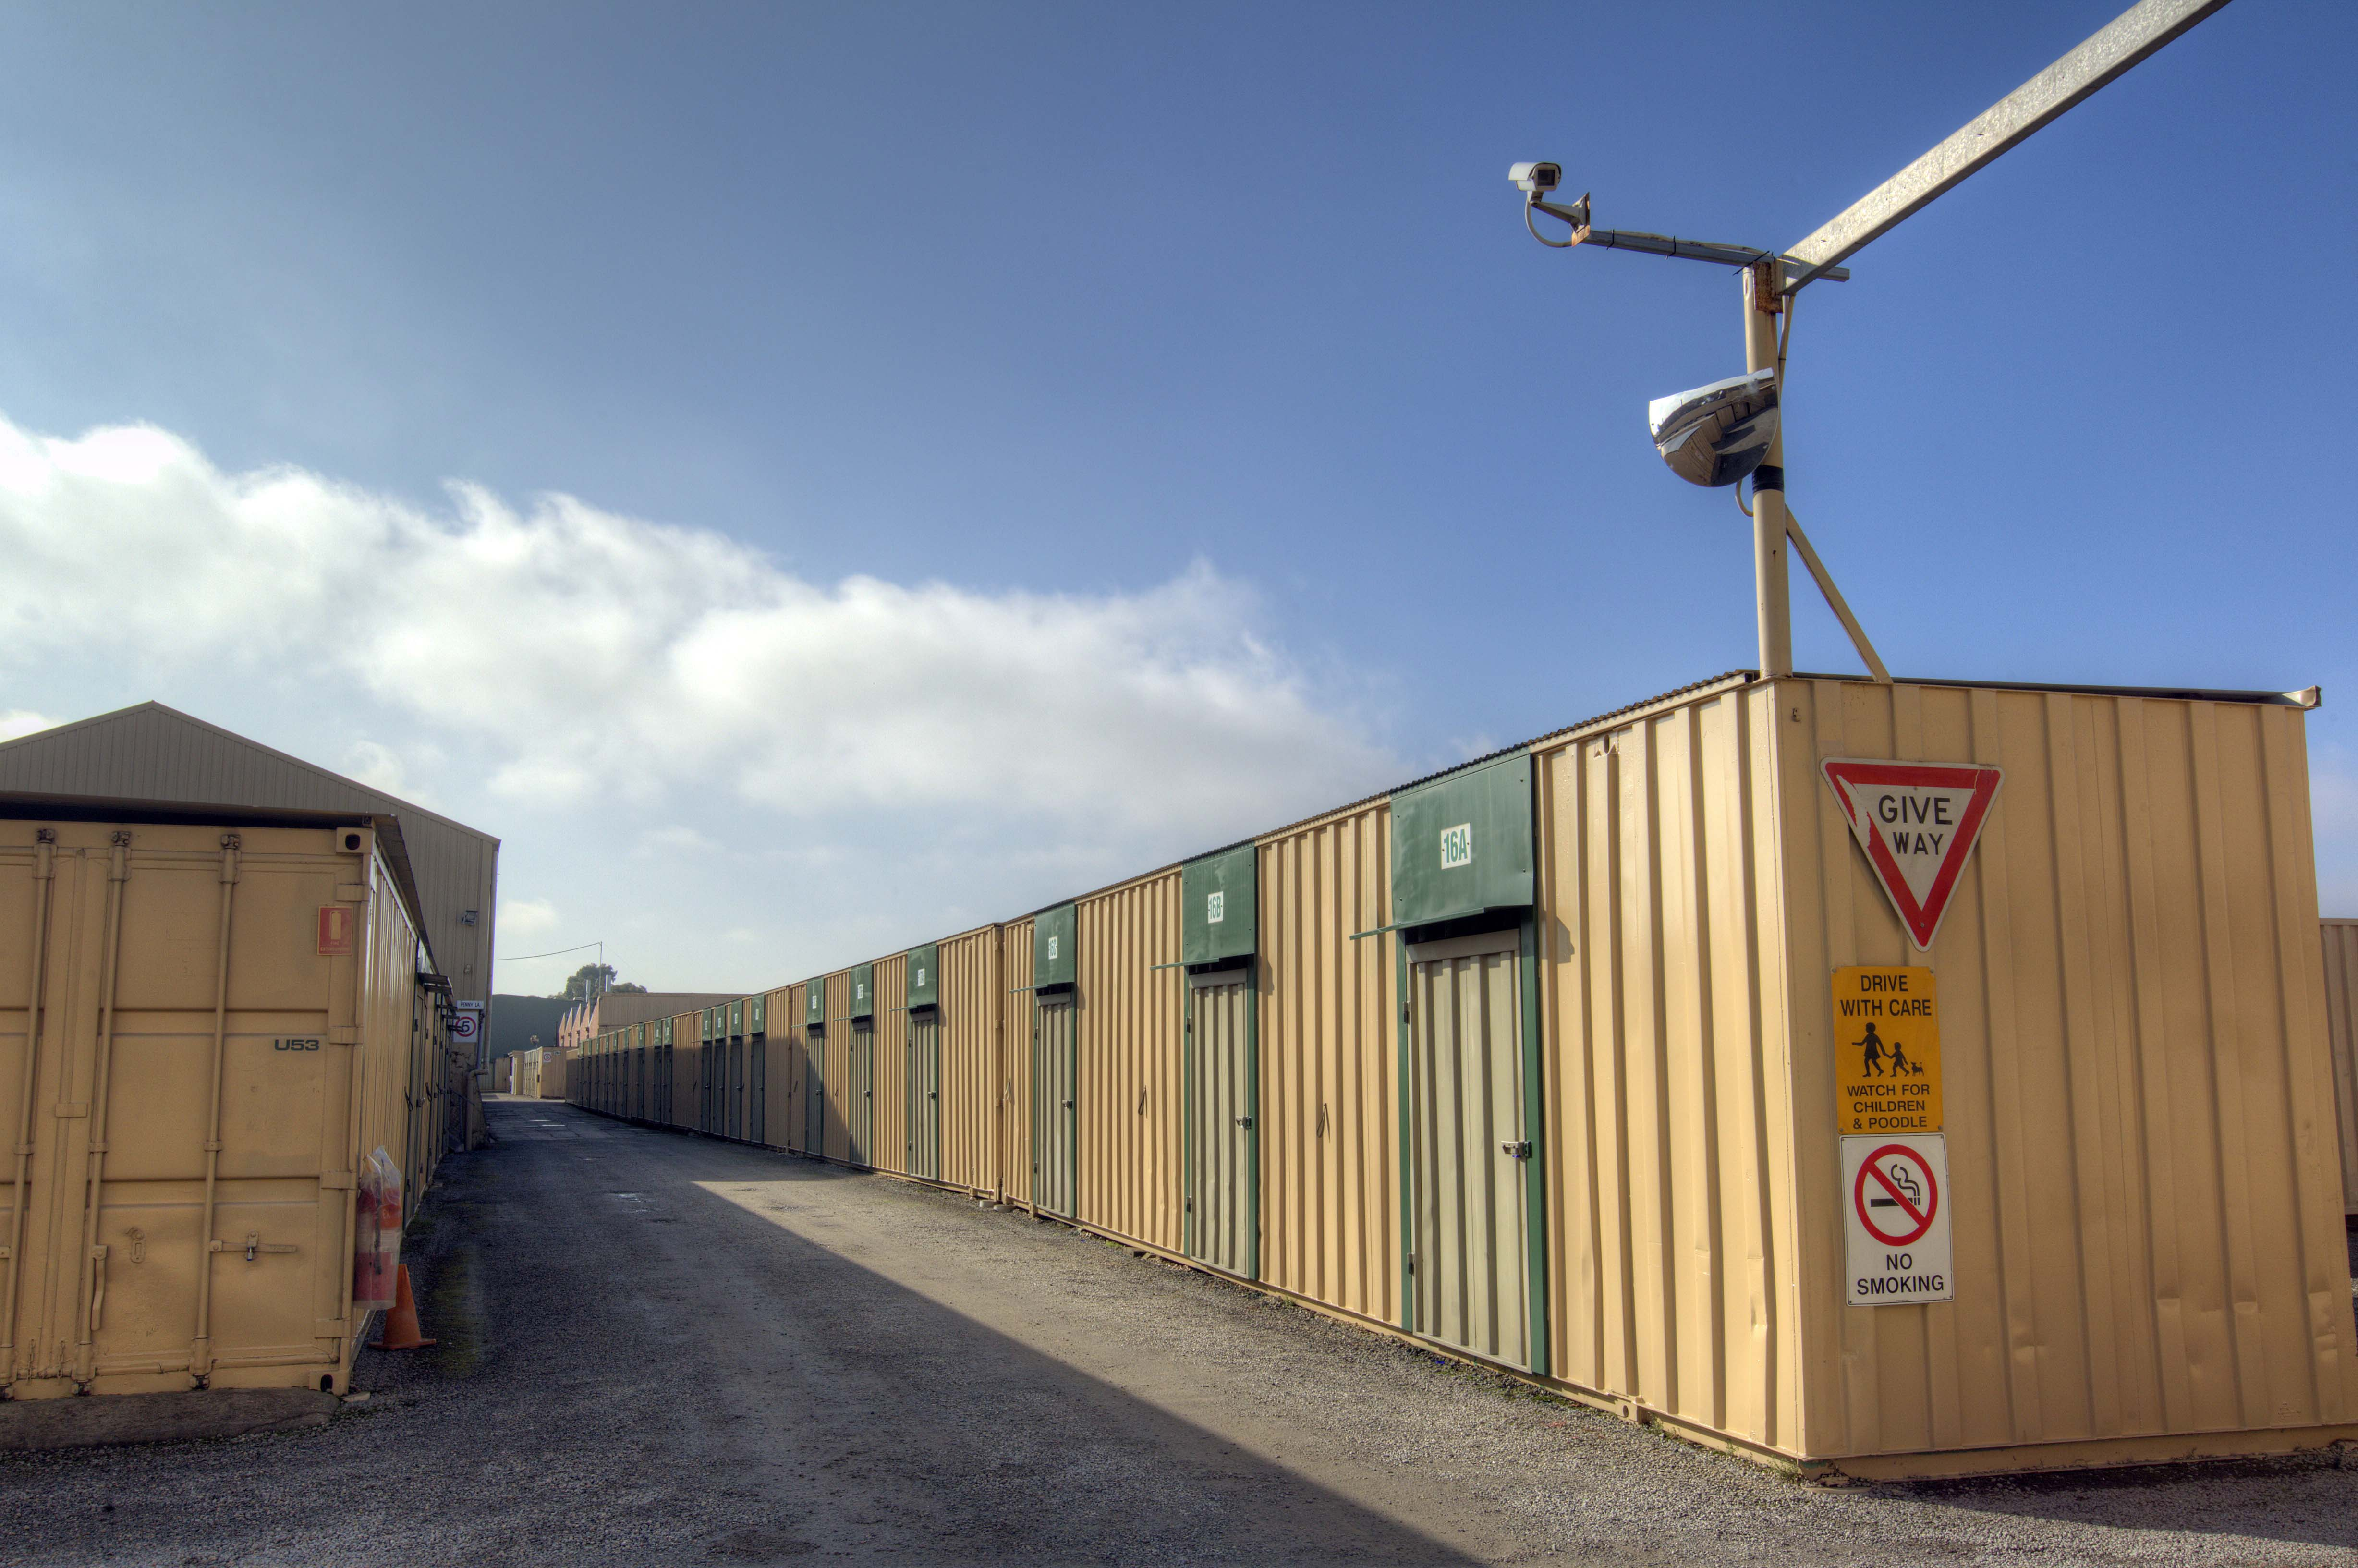 Large converted shipping containers were the original concept at the very start of Fort Knox Self Storage.